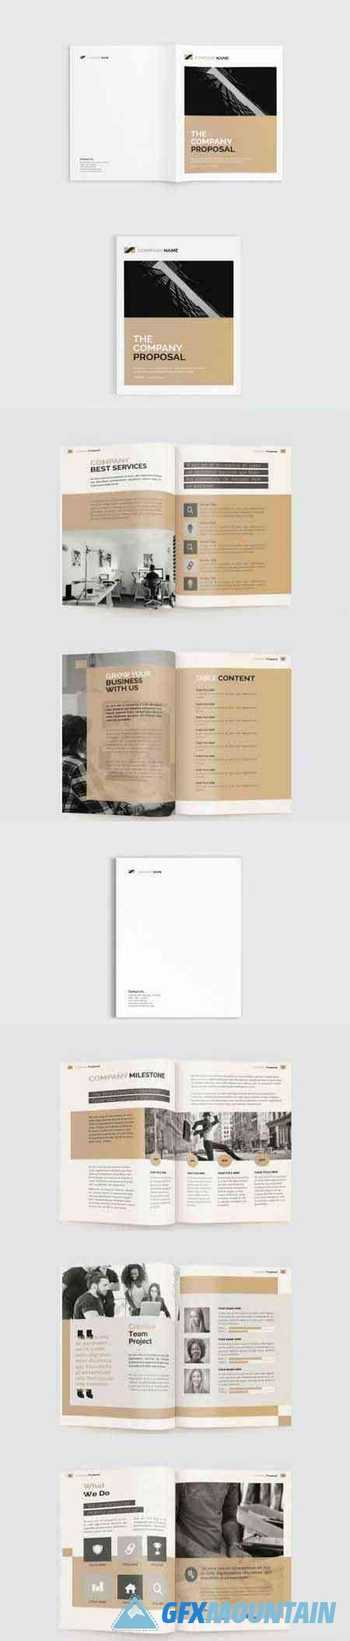 The Company Proposal Brochure